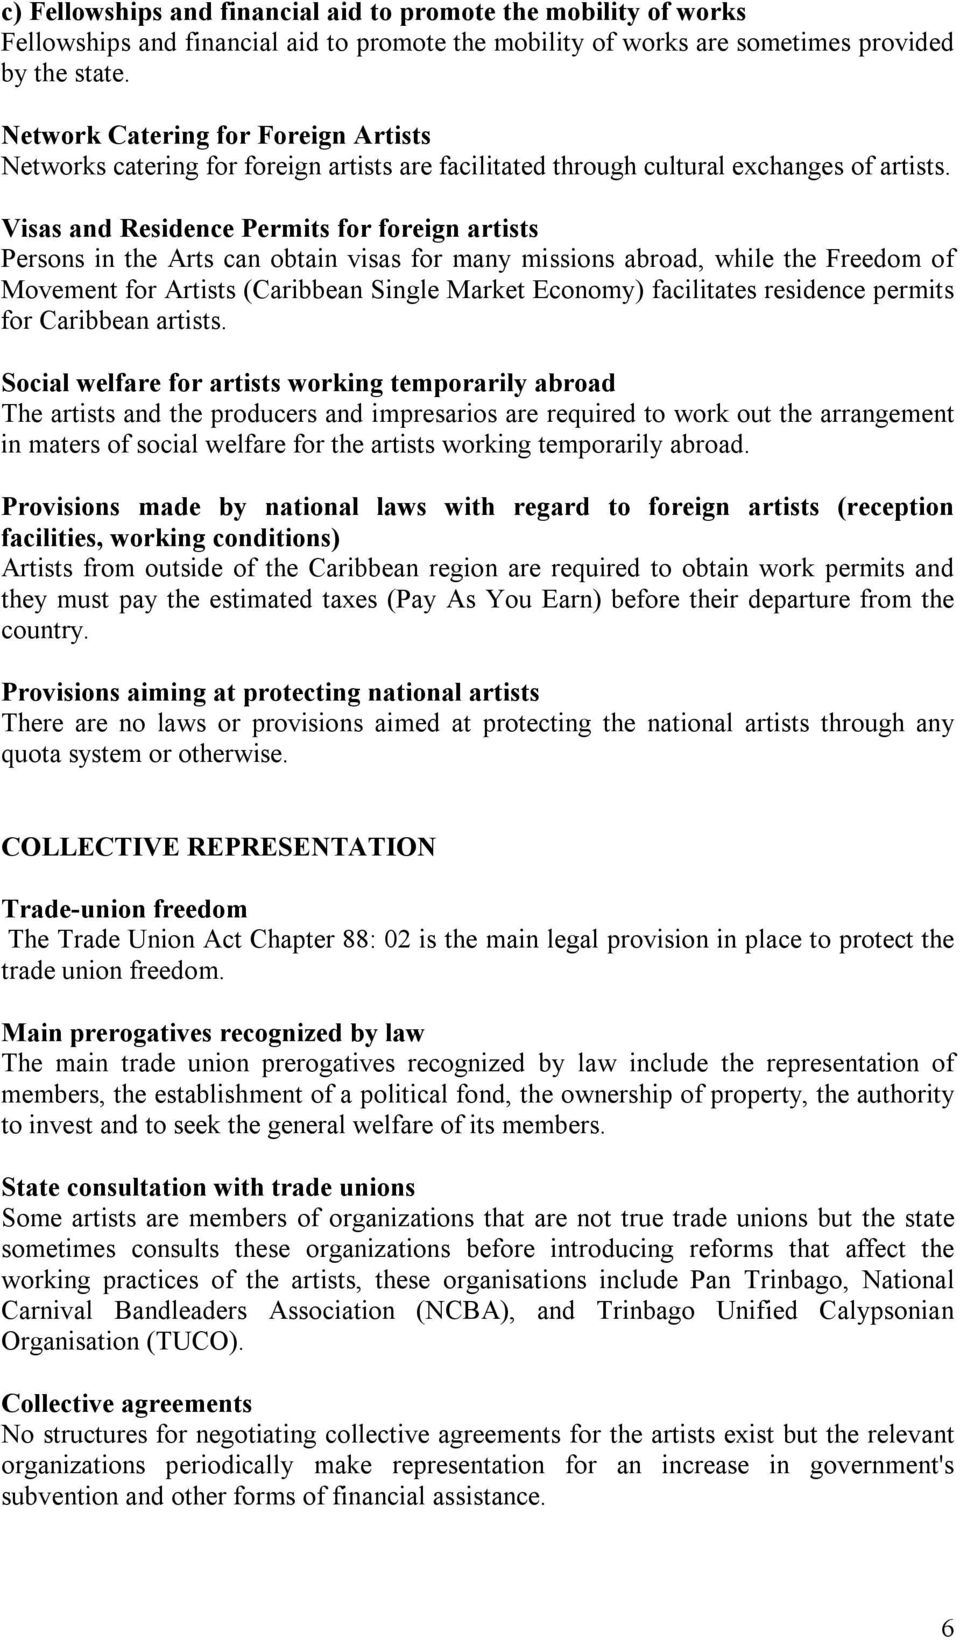 Visas and Residence Permits for foreign artists Persons in the Arts can obtain visas for many missions abroad, while the Freedom of Movement for Artists (Caribbean Single Market Economy) facilitates